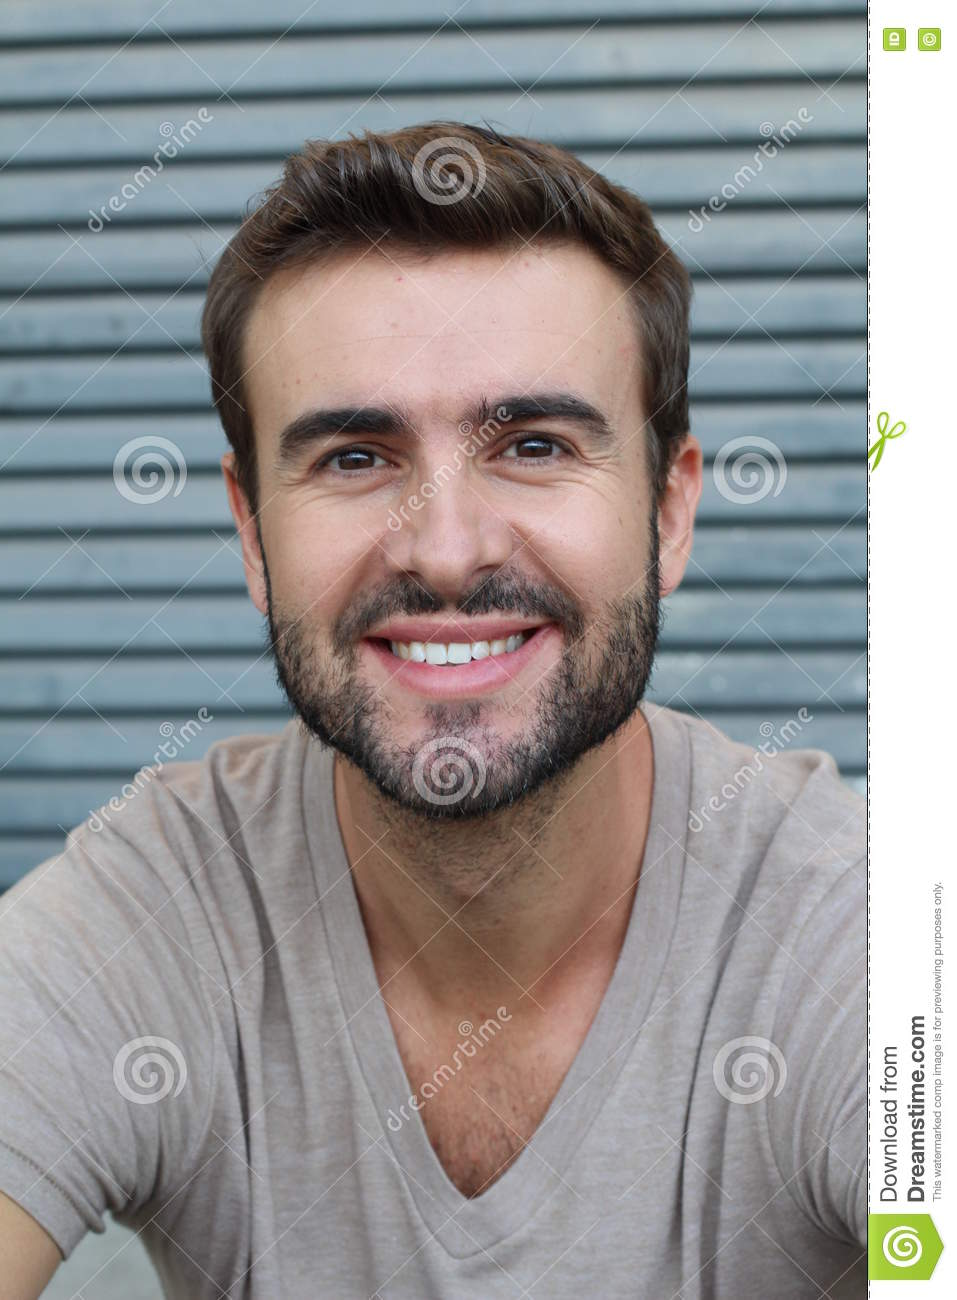 Portrait Of Good Looking Smiling Bearded Man With Perfect White Teeth Young Beautiful Caucasian Male